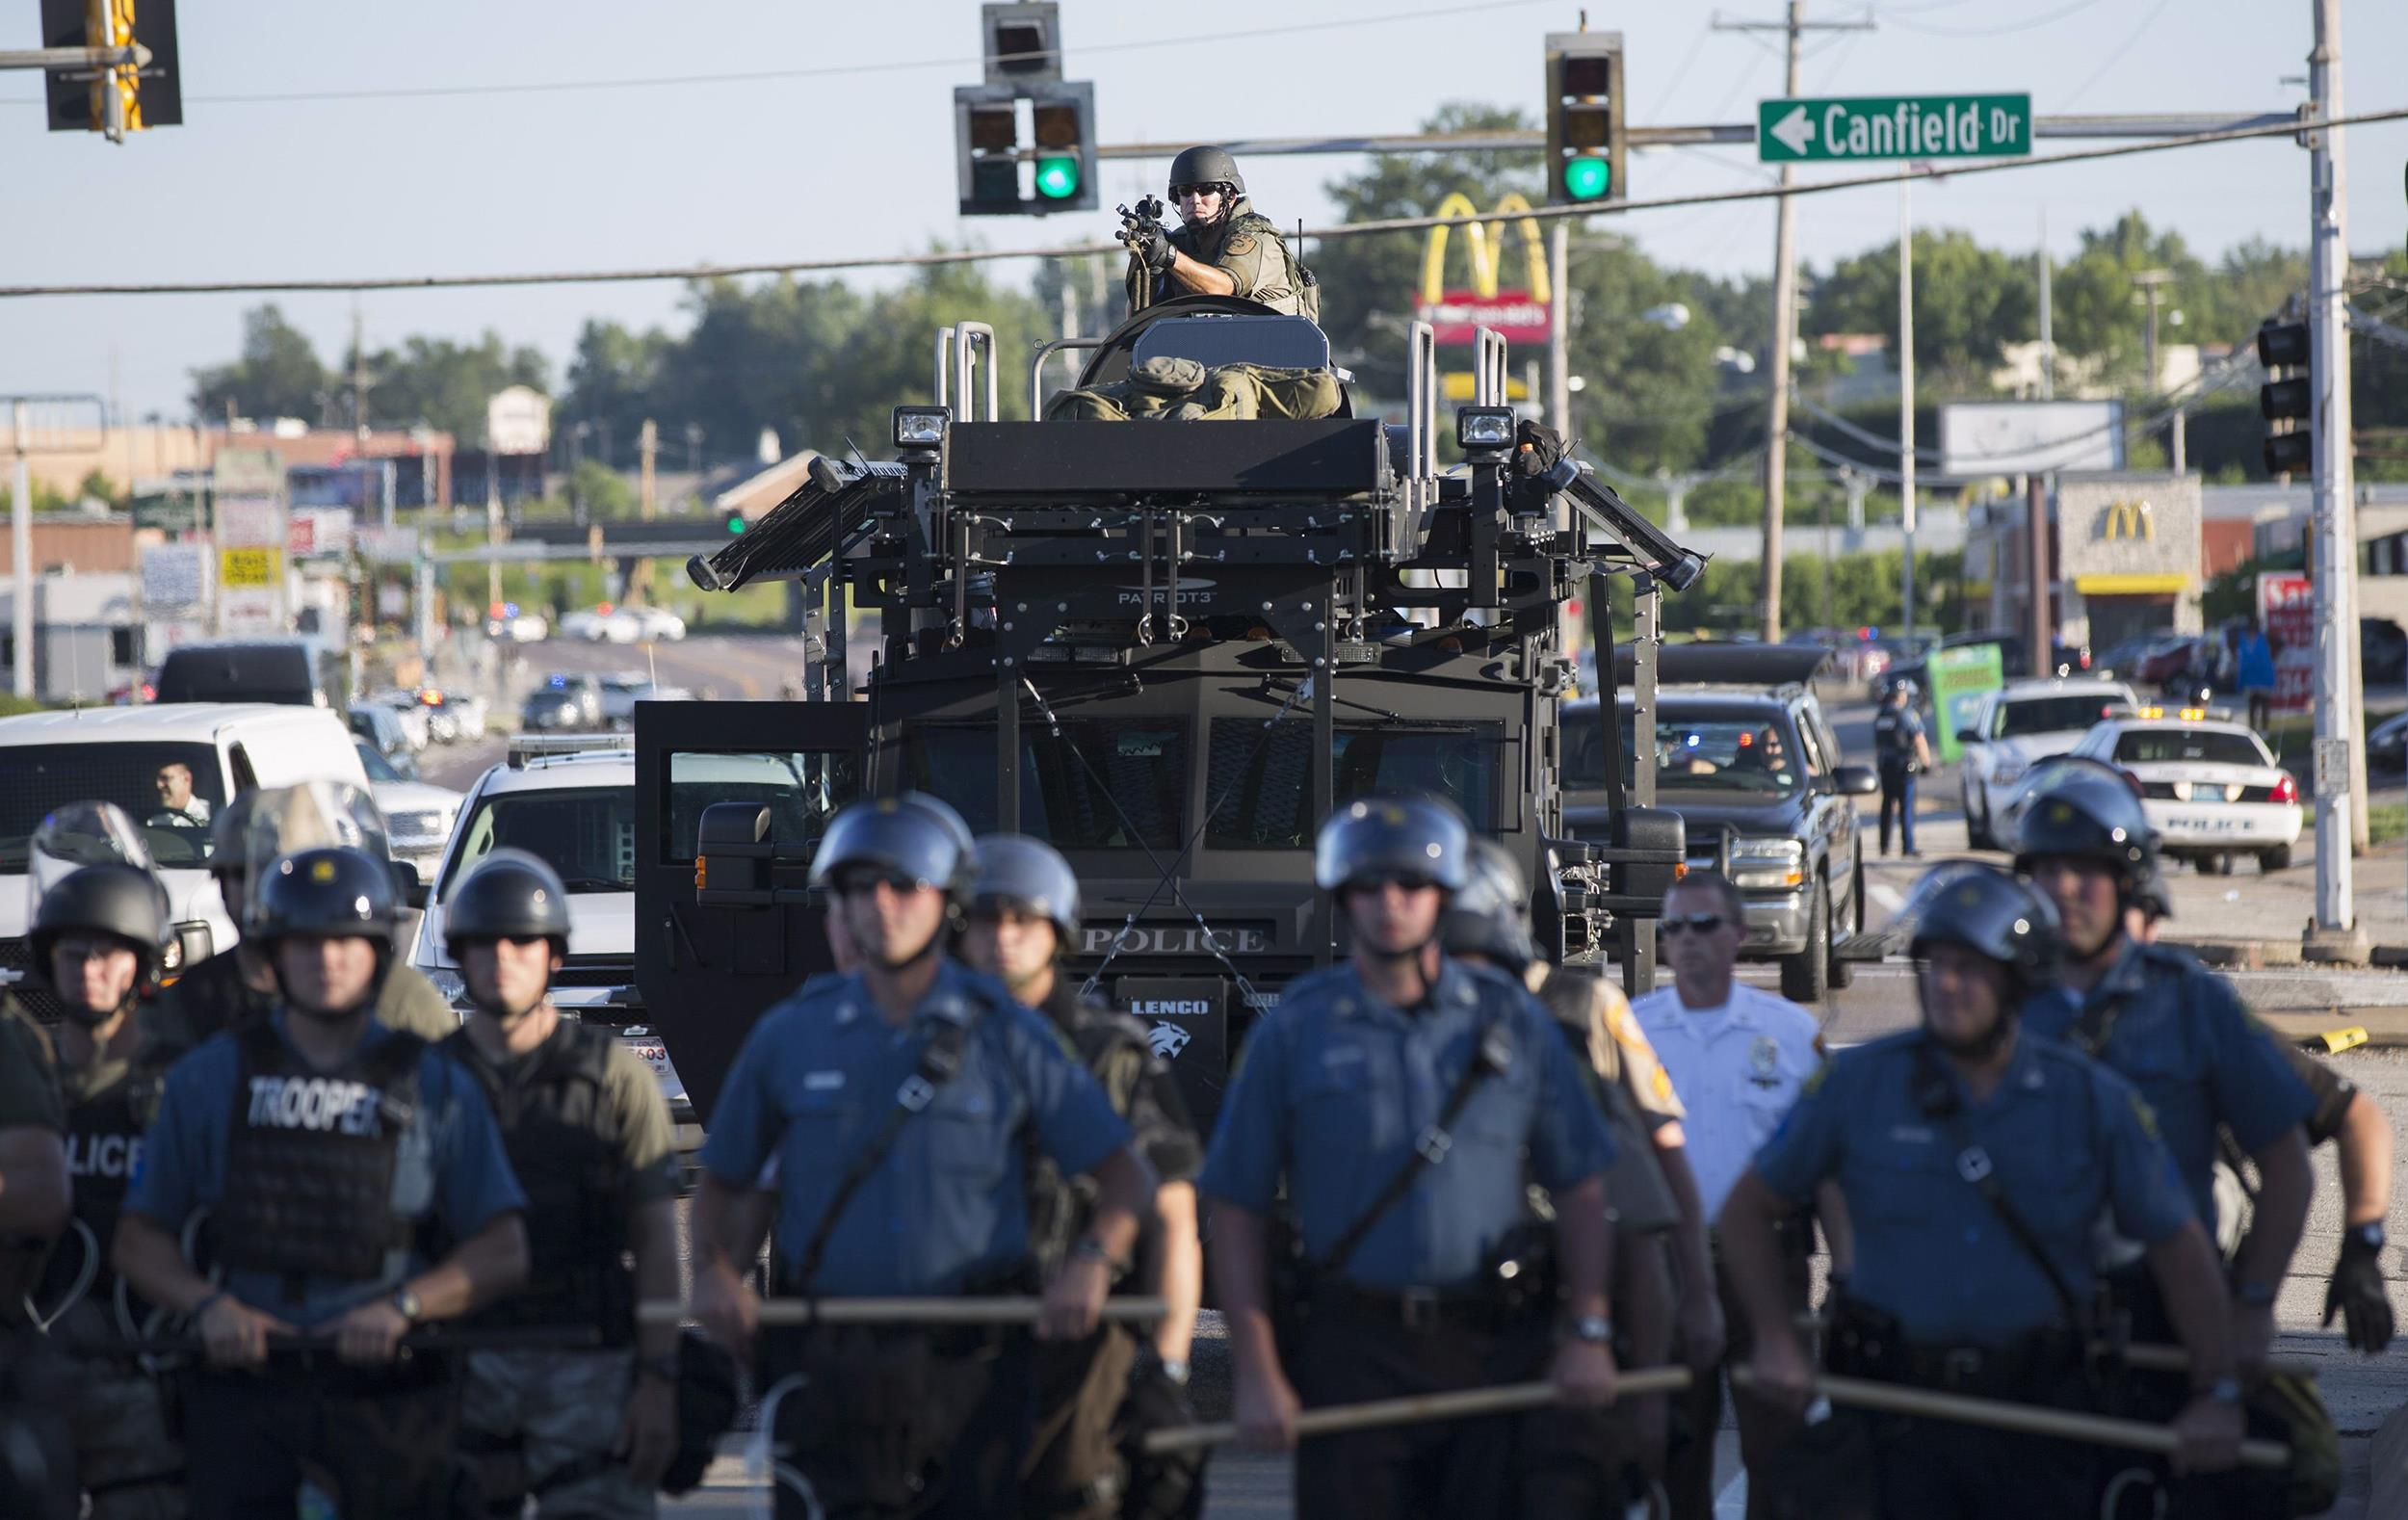 Image: Riot police stand guard as demonstrators protest the shooting death of teenager Michael Brown in Ferguson, Missouri